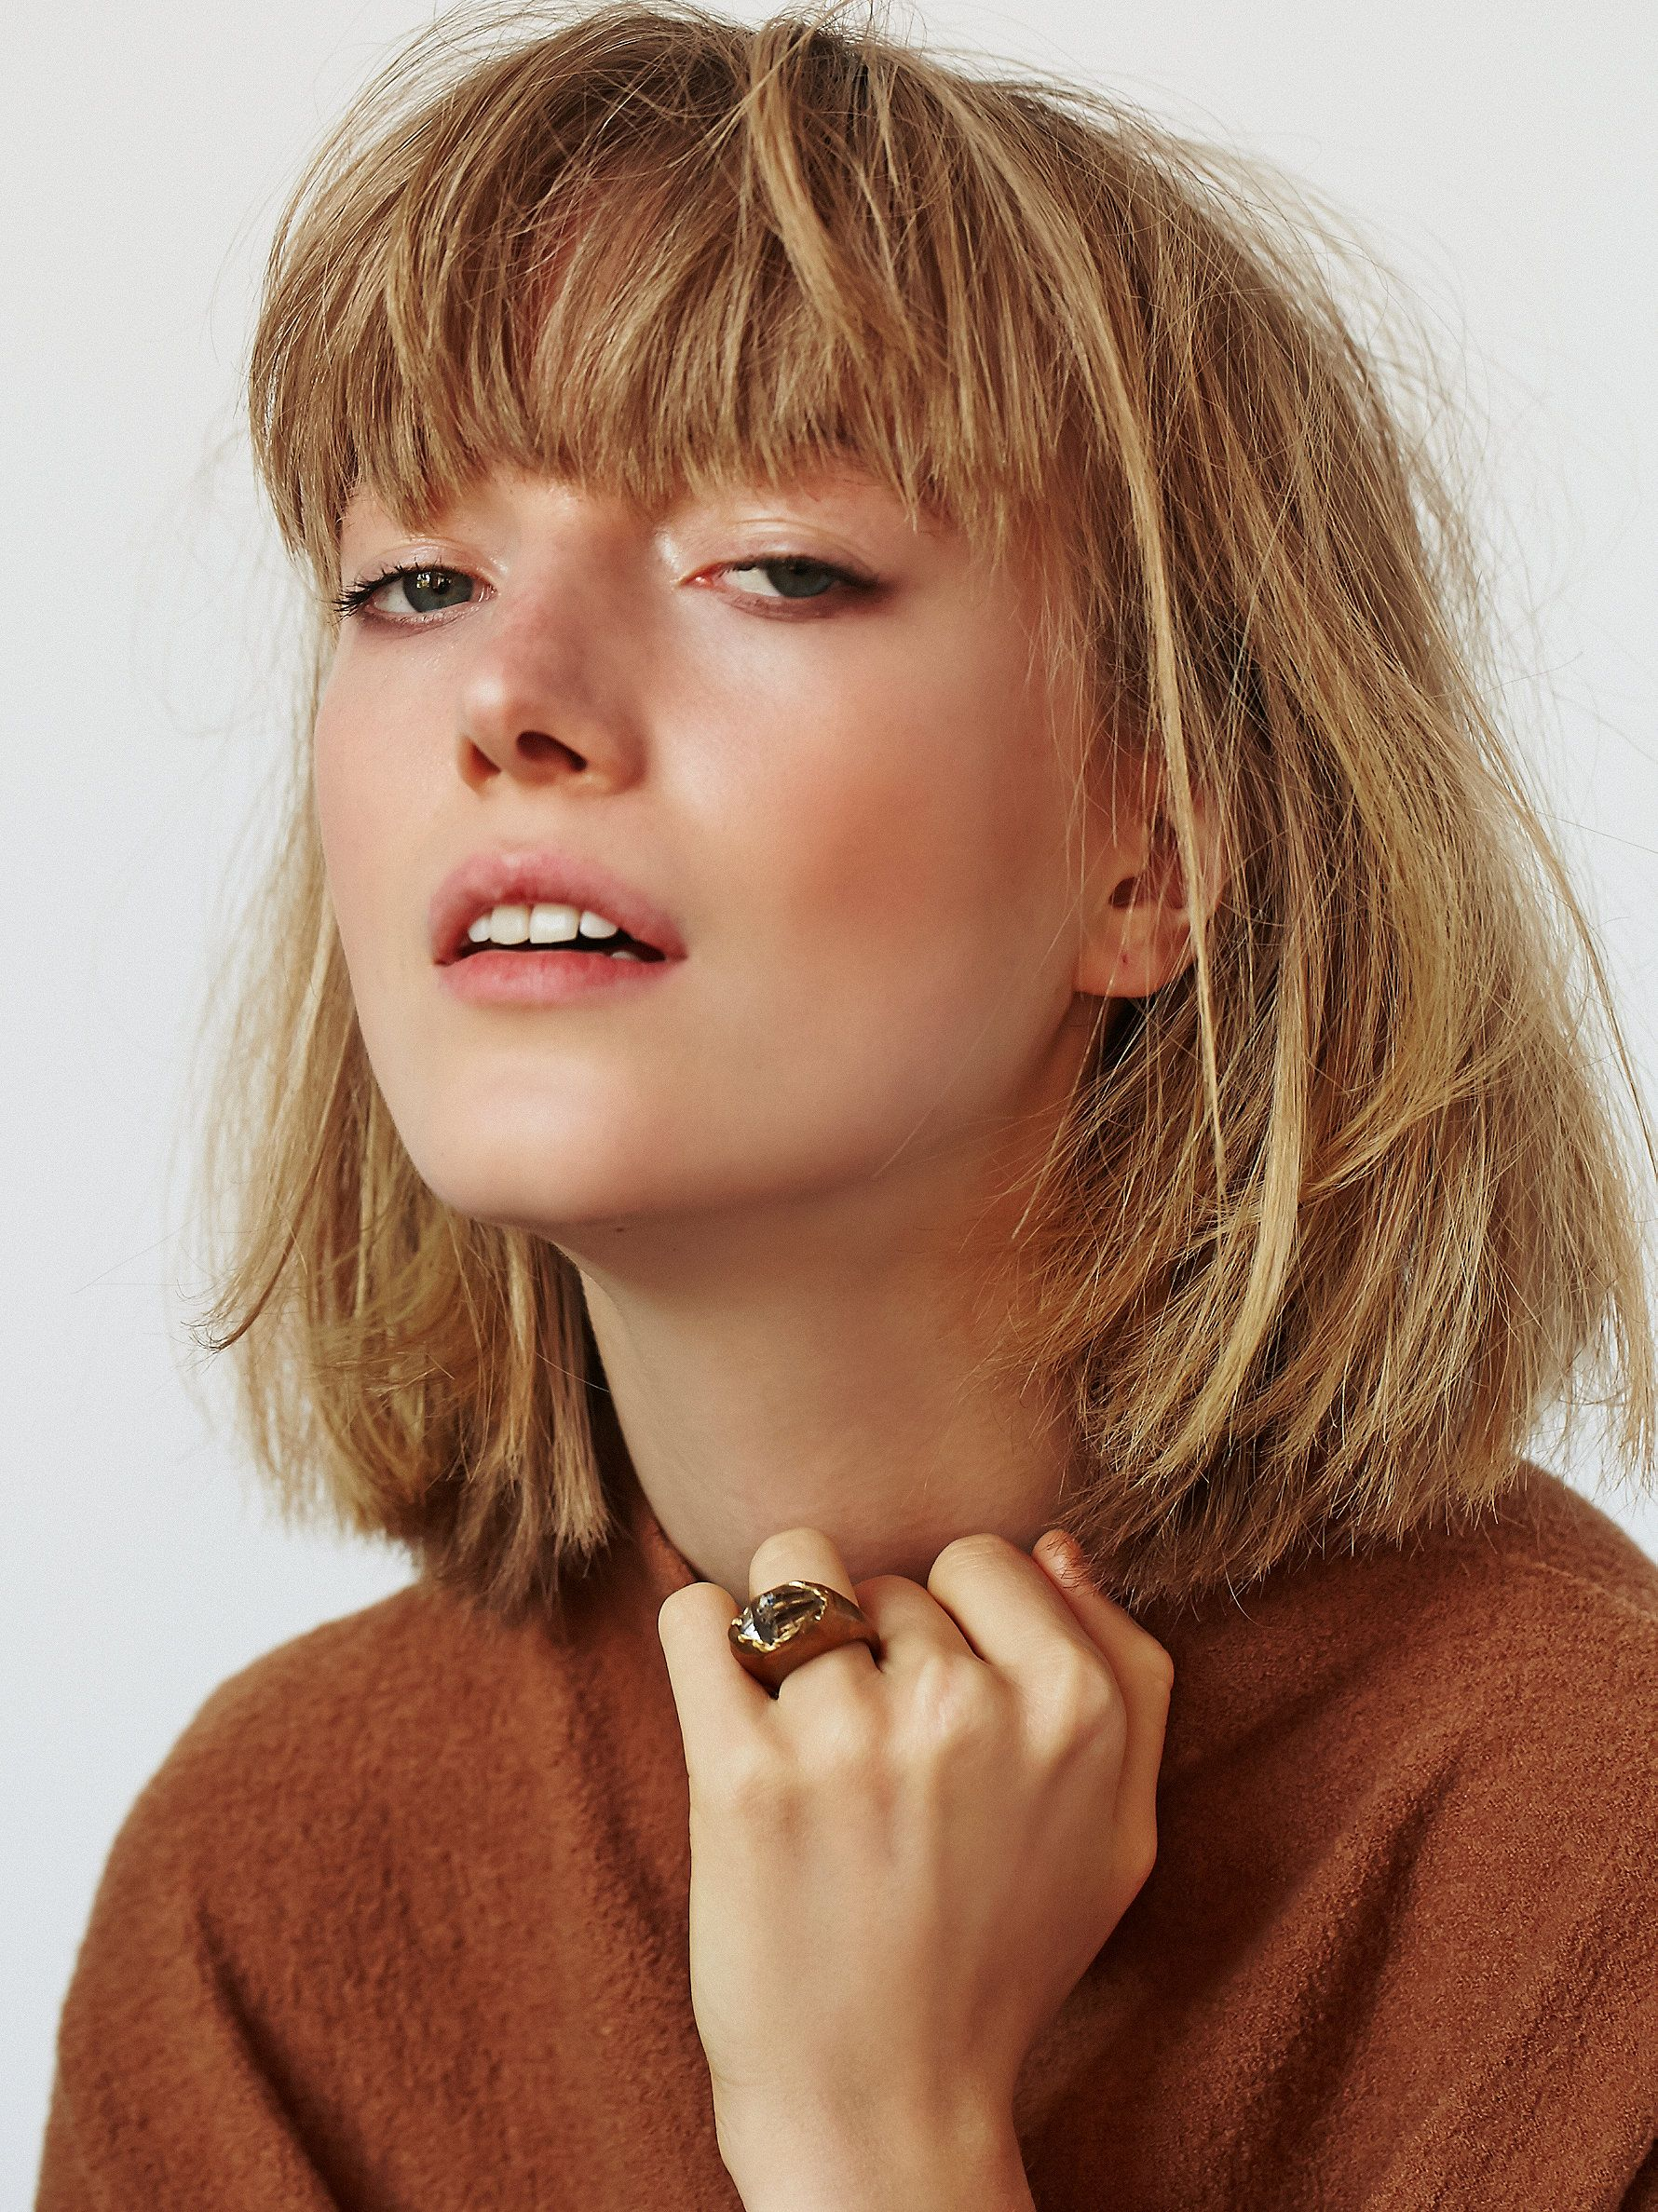 Short blunt bob hairstyle with bangs short hairstyles - Choppy Bob With Bangs Hair Short